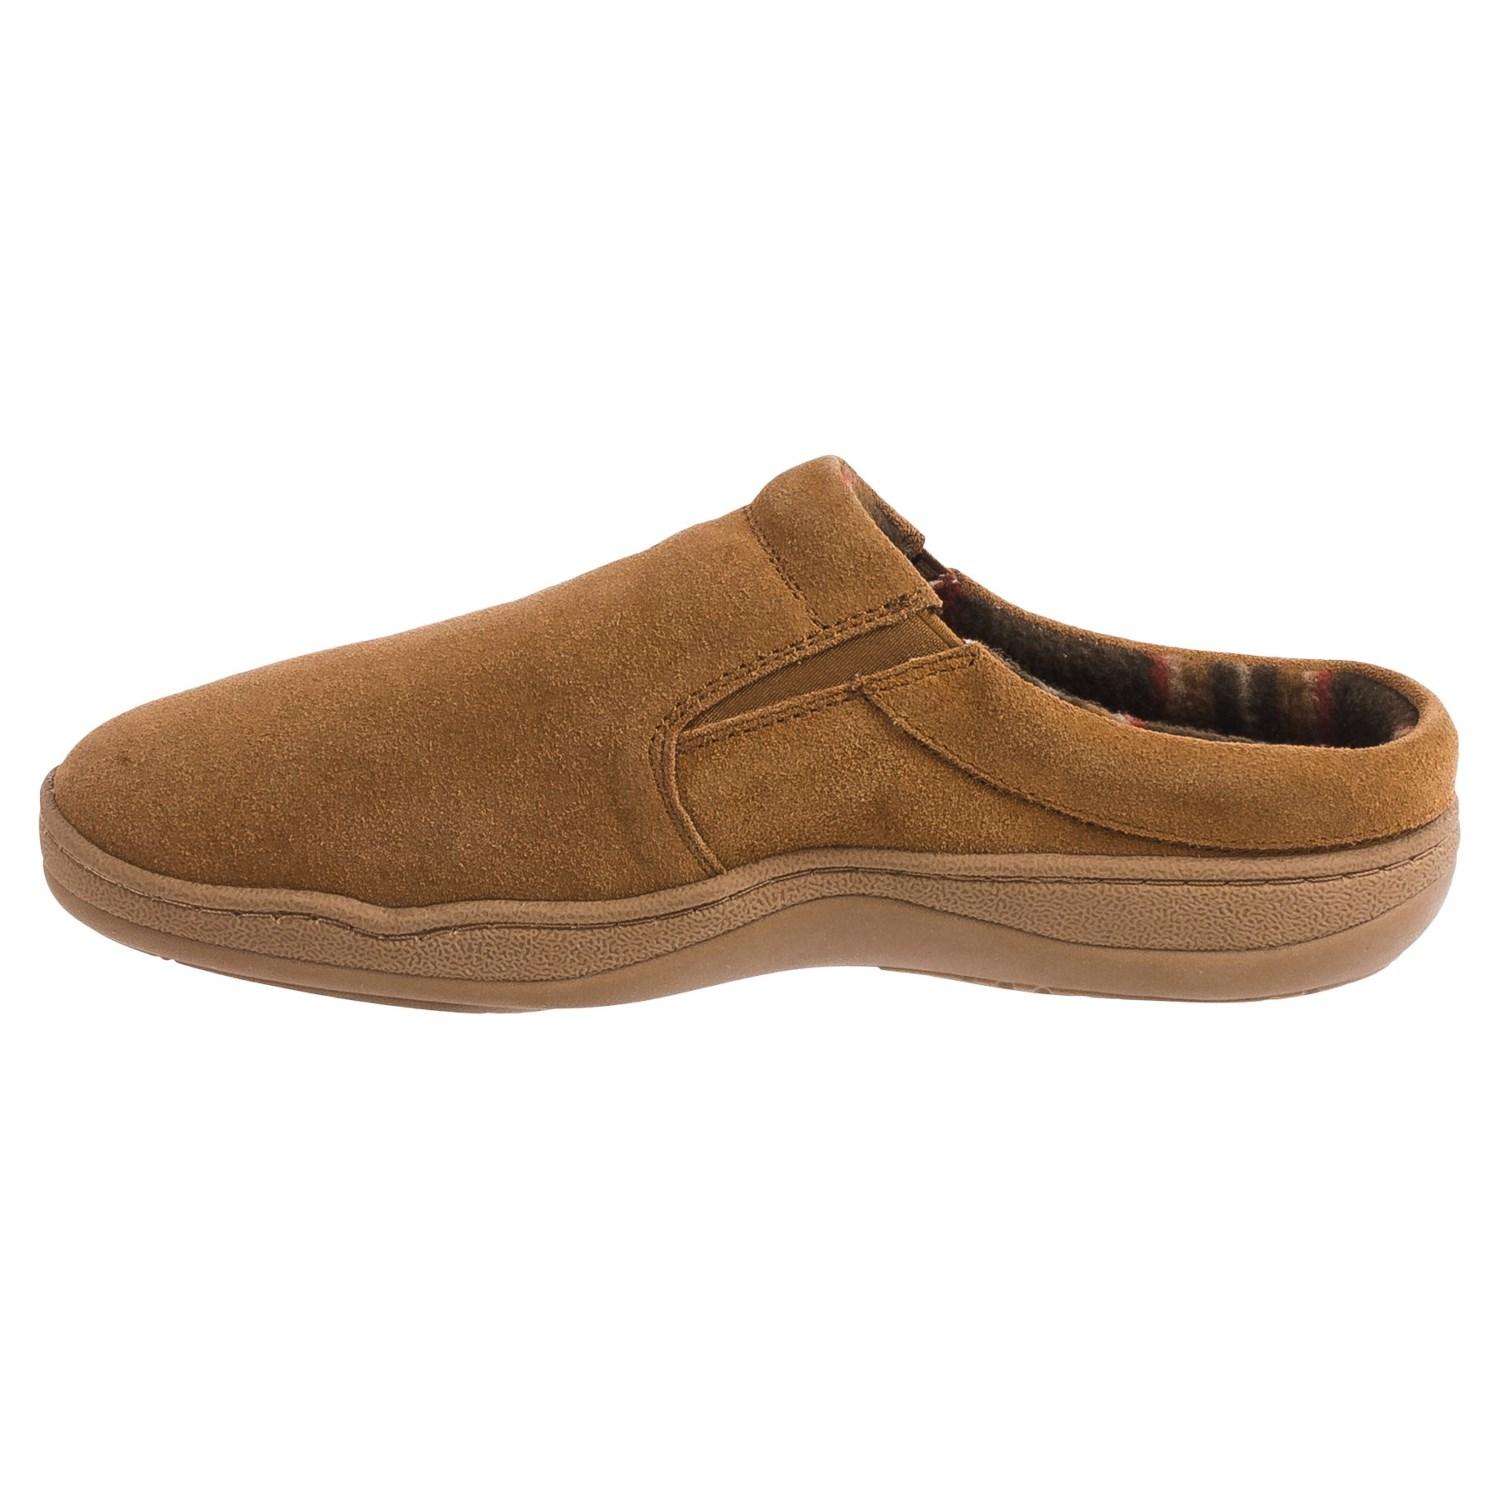 Shop our mens slippers for maximum comfort and foot support. Our leather and suede house shoes for men are built to last for years.